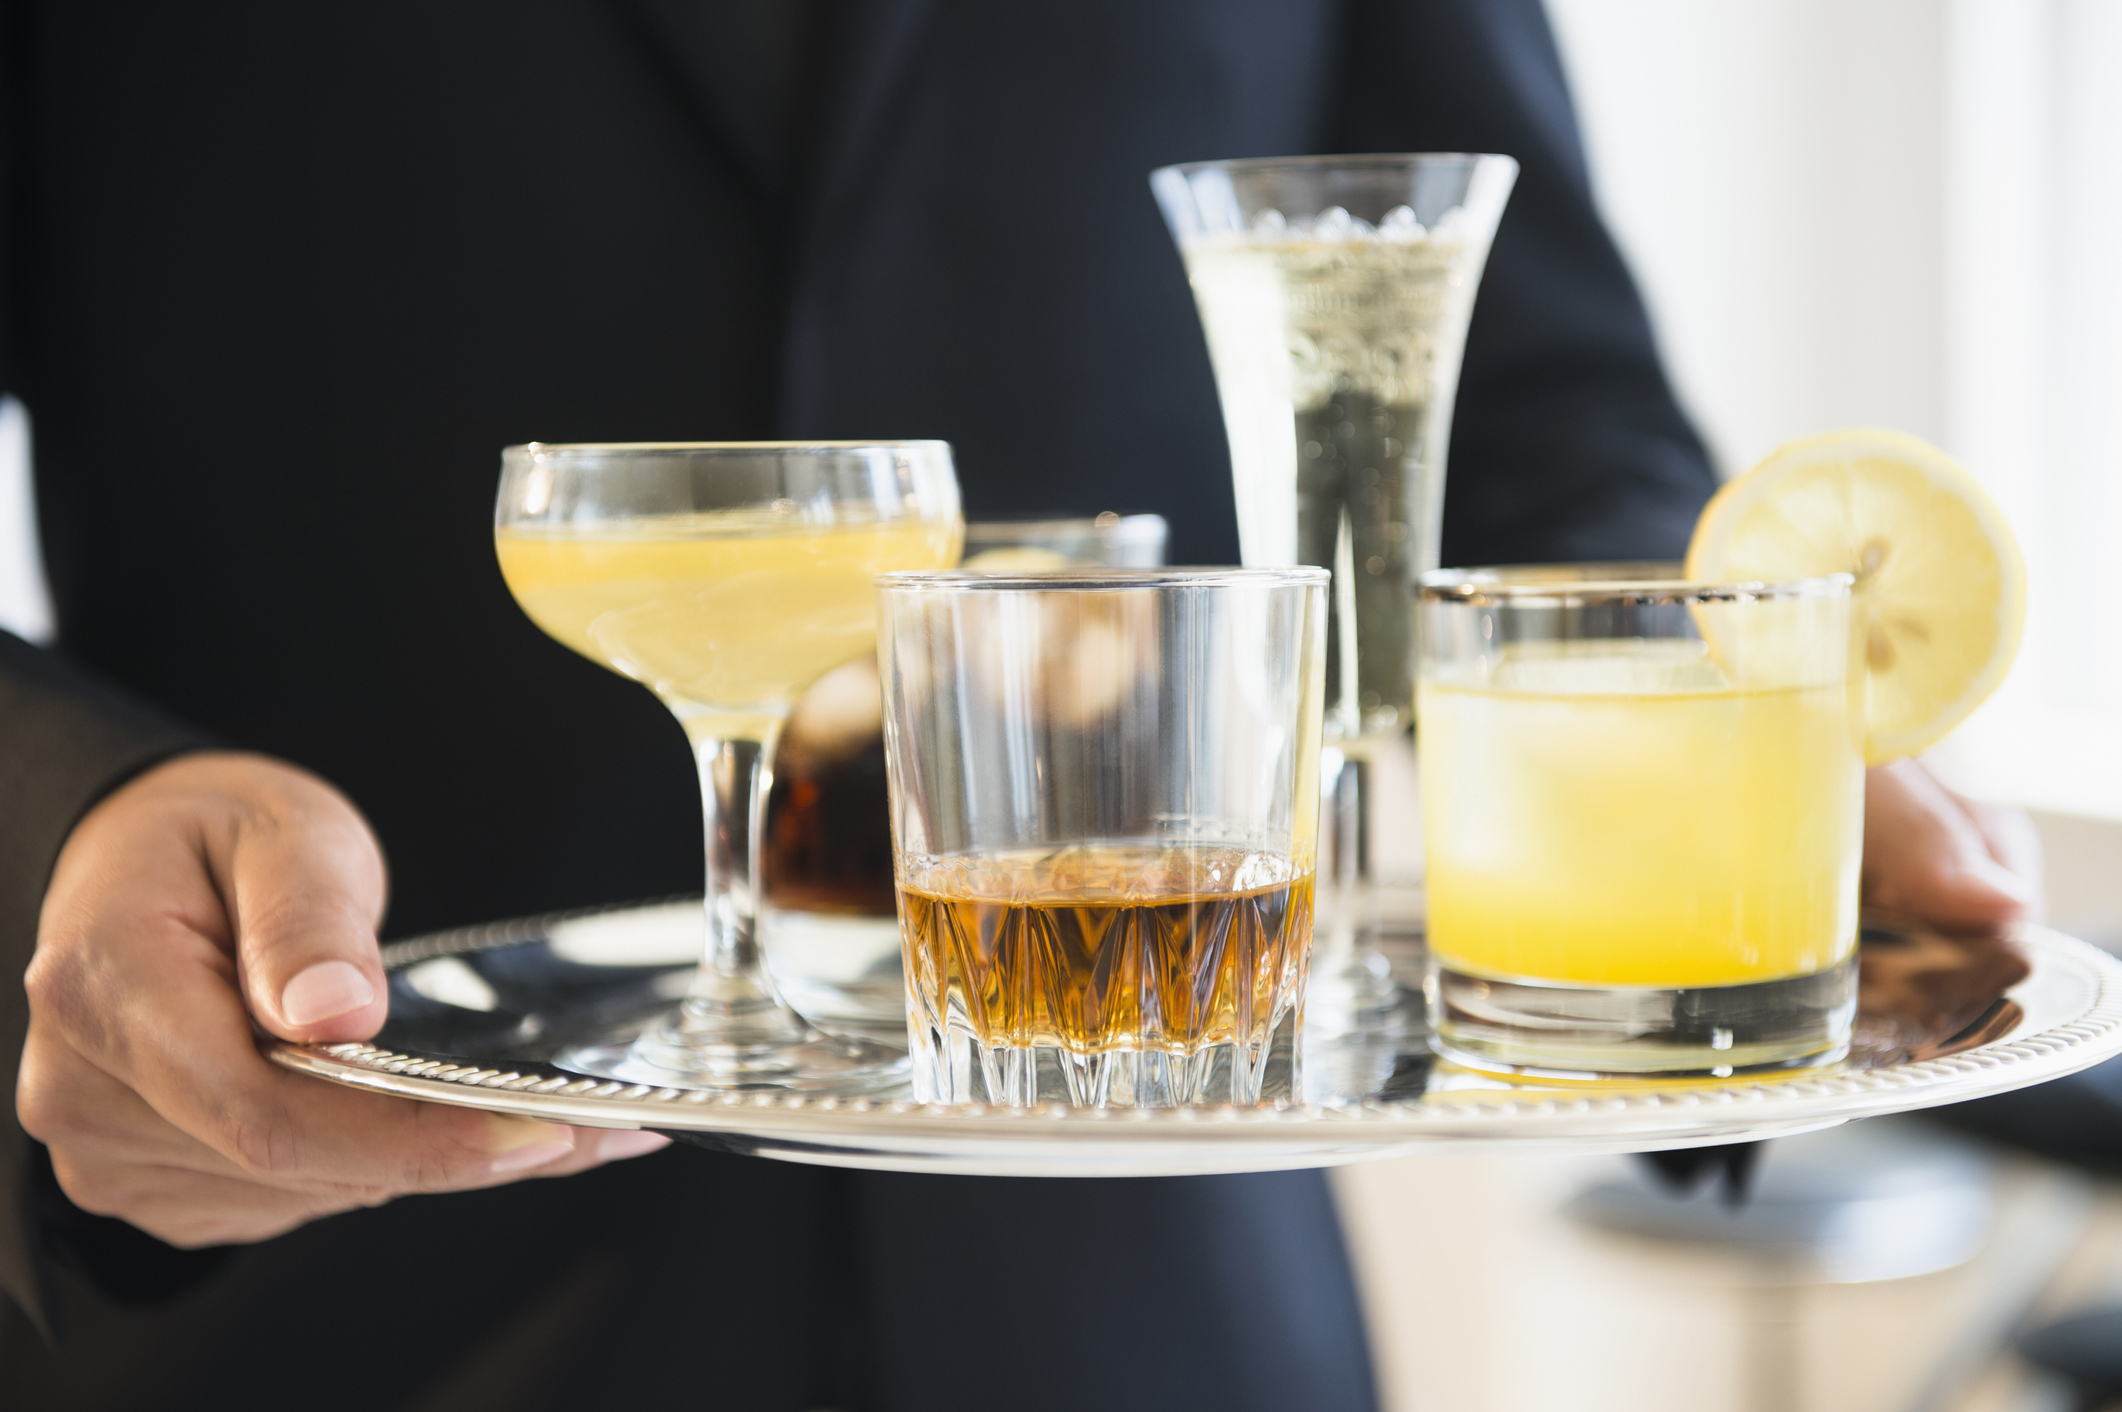 Article image for Calorific drinks: Making better alcohol choices during the Christmas season